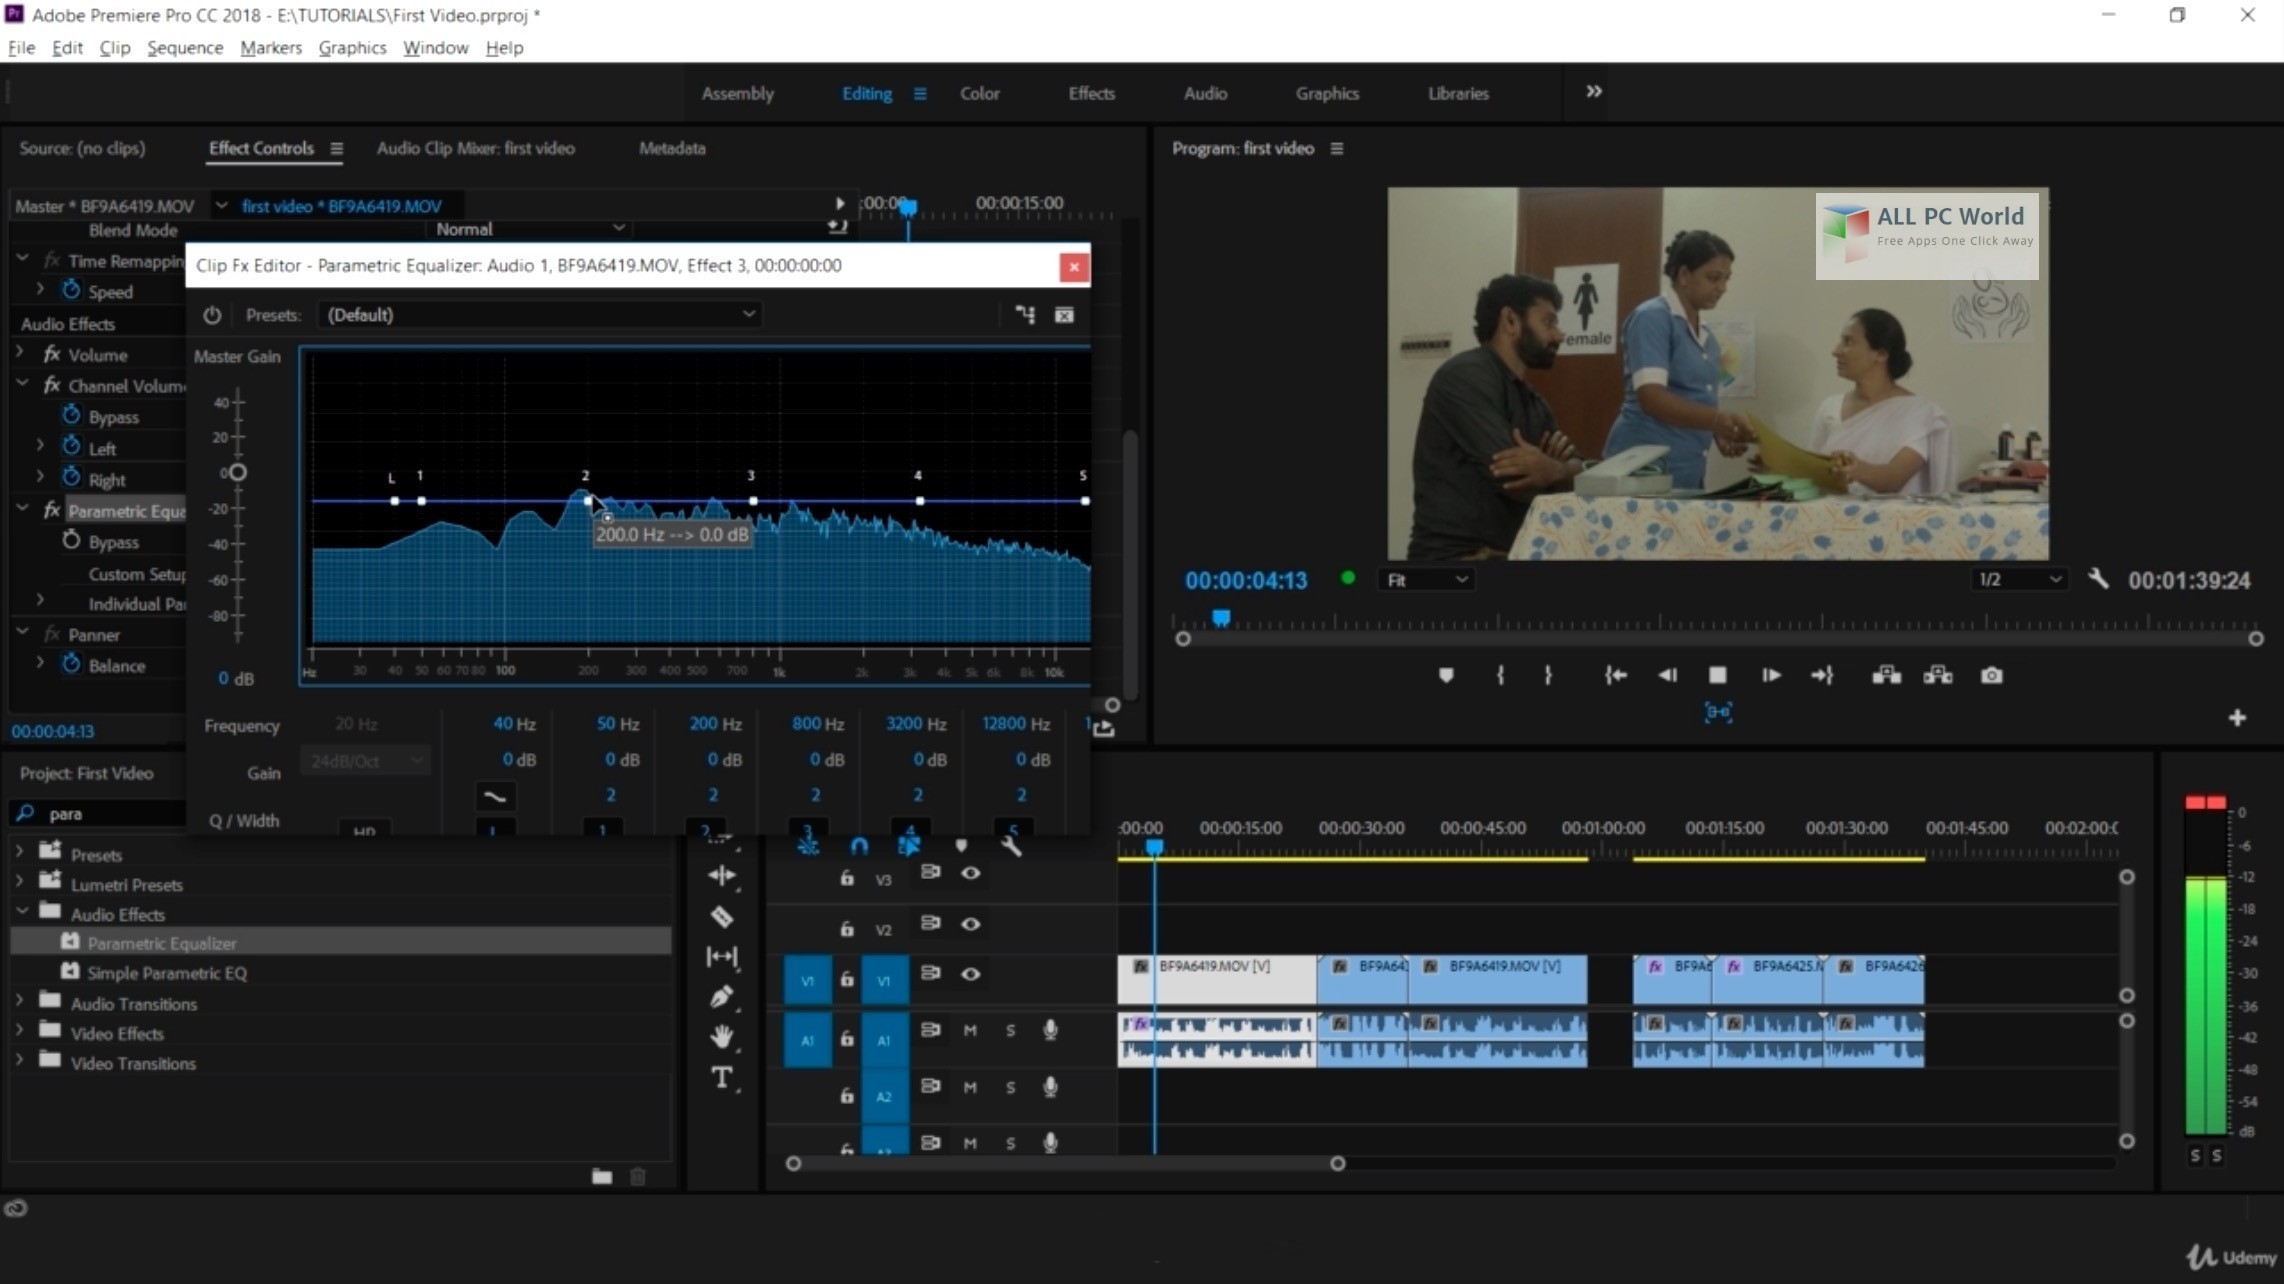 adobe premiere pro full version free download for windows 8